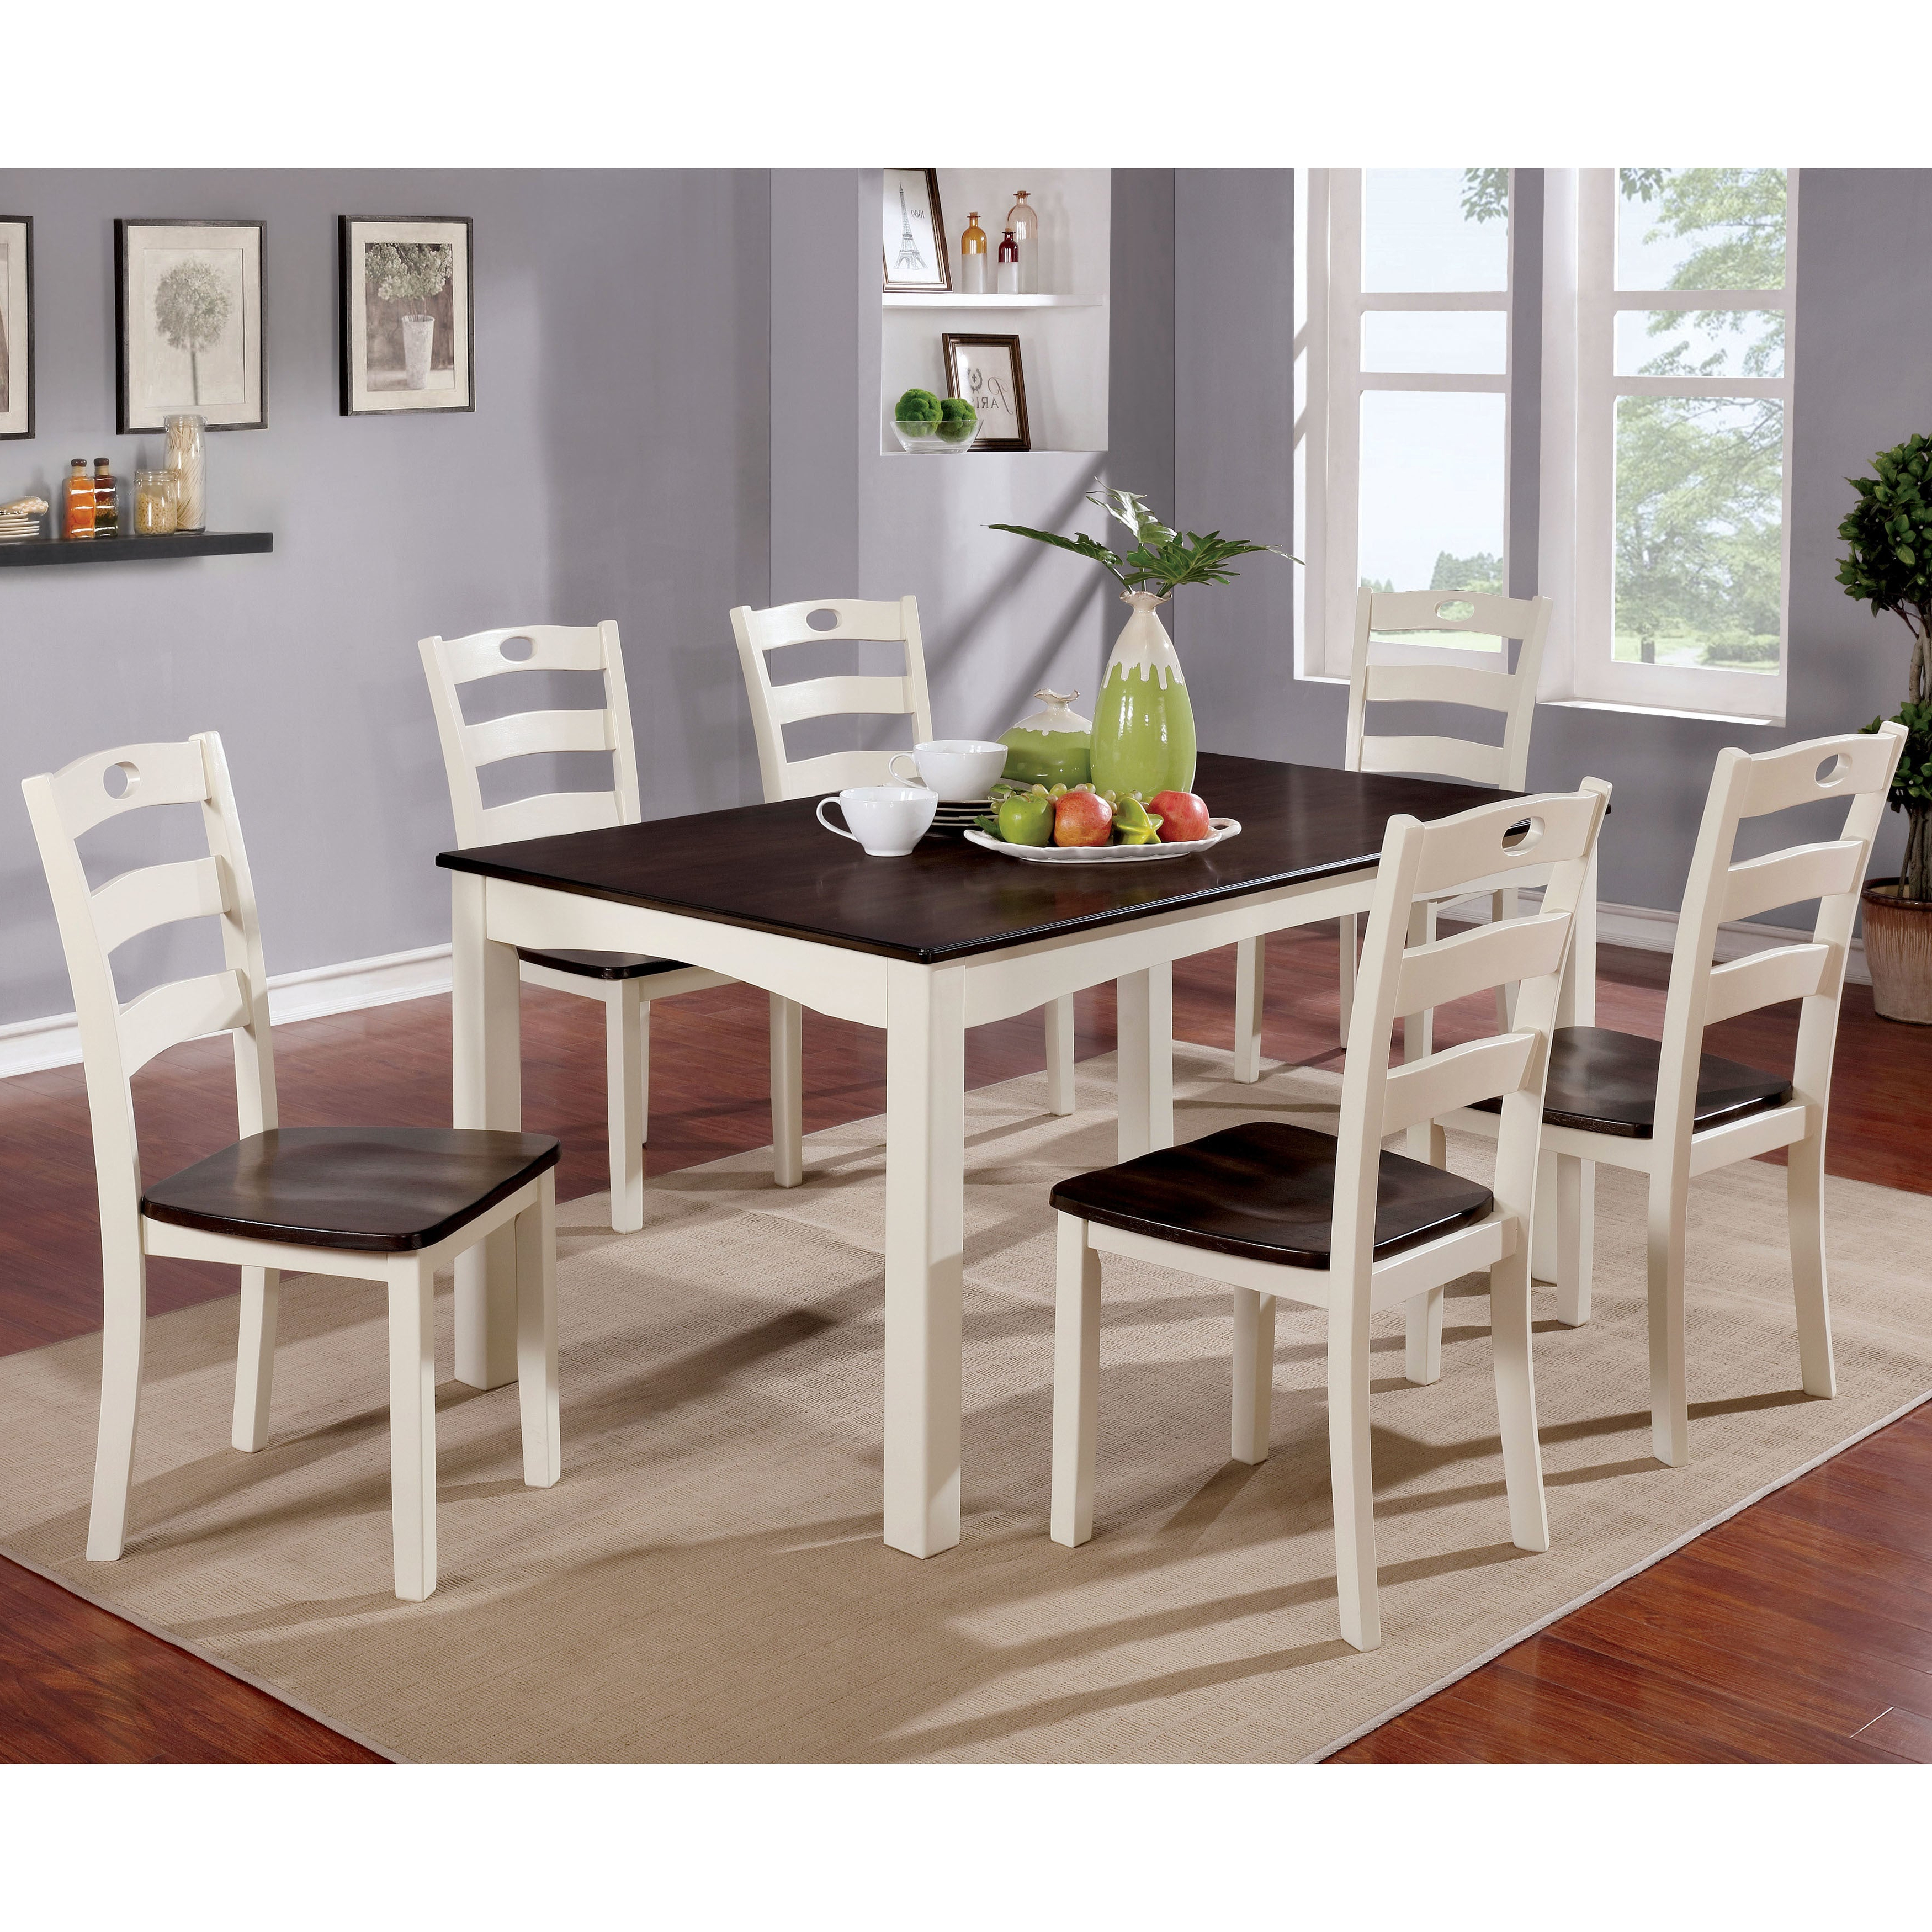 Trendy Buy Kitchen & Dining Room Sets Sale Ends In 2 Days Online At Within Aria 5 Piece Dining Sets (View 10 of 25)